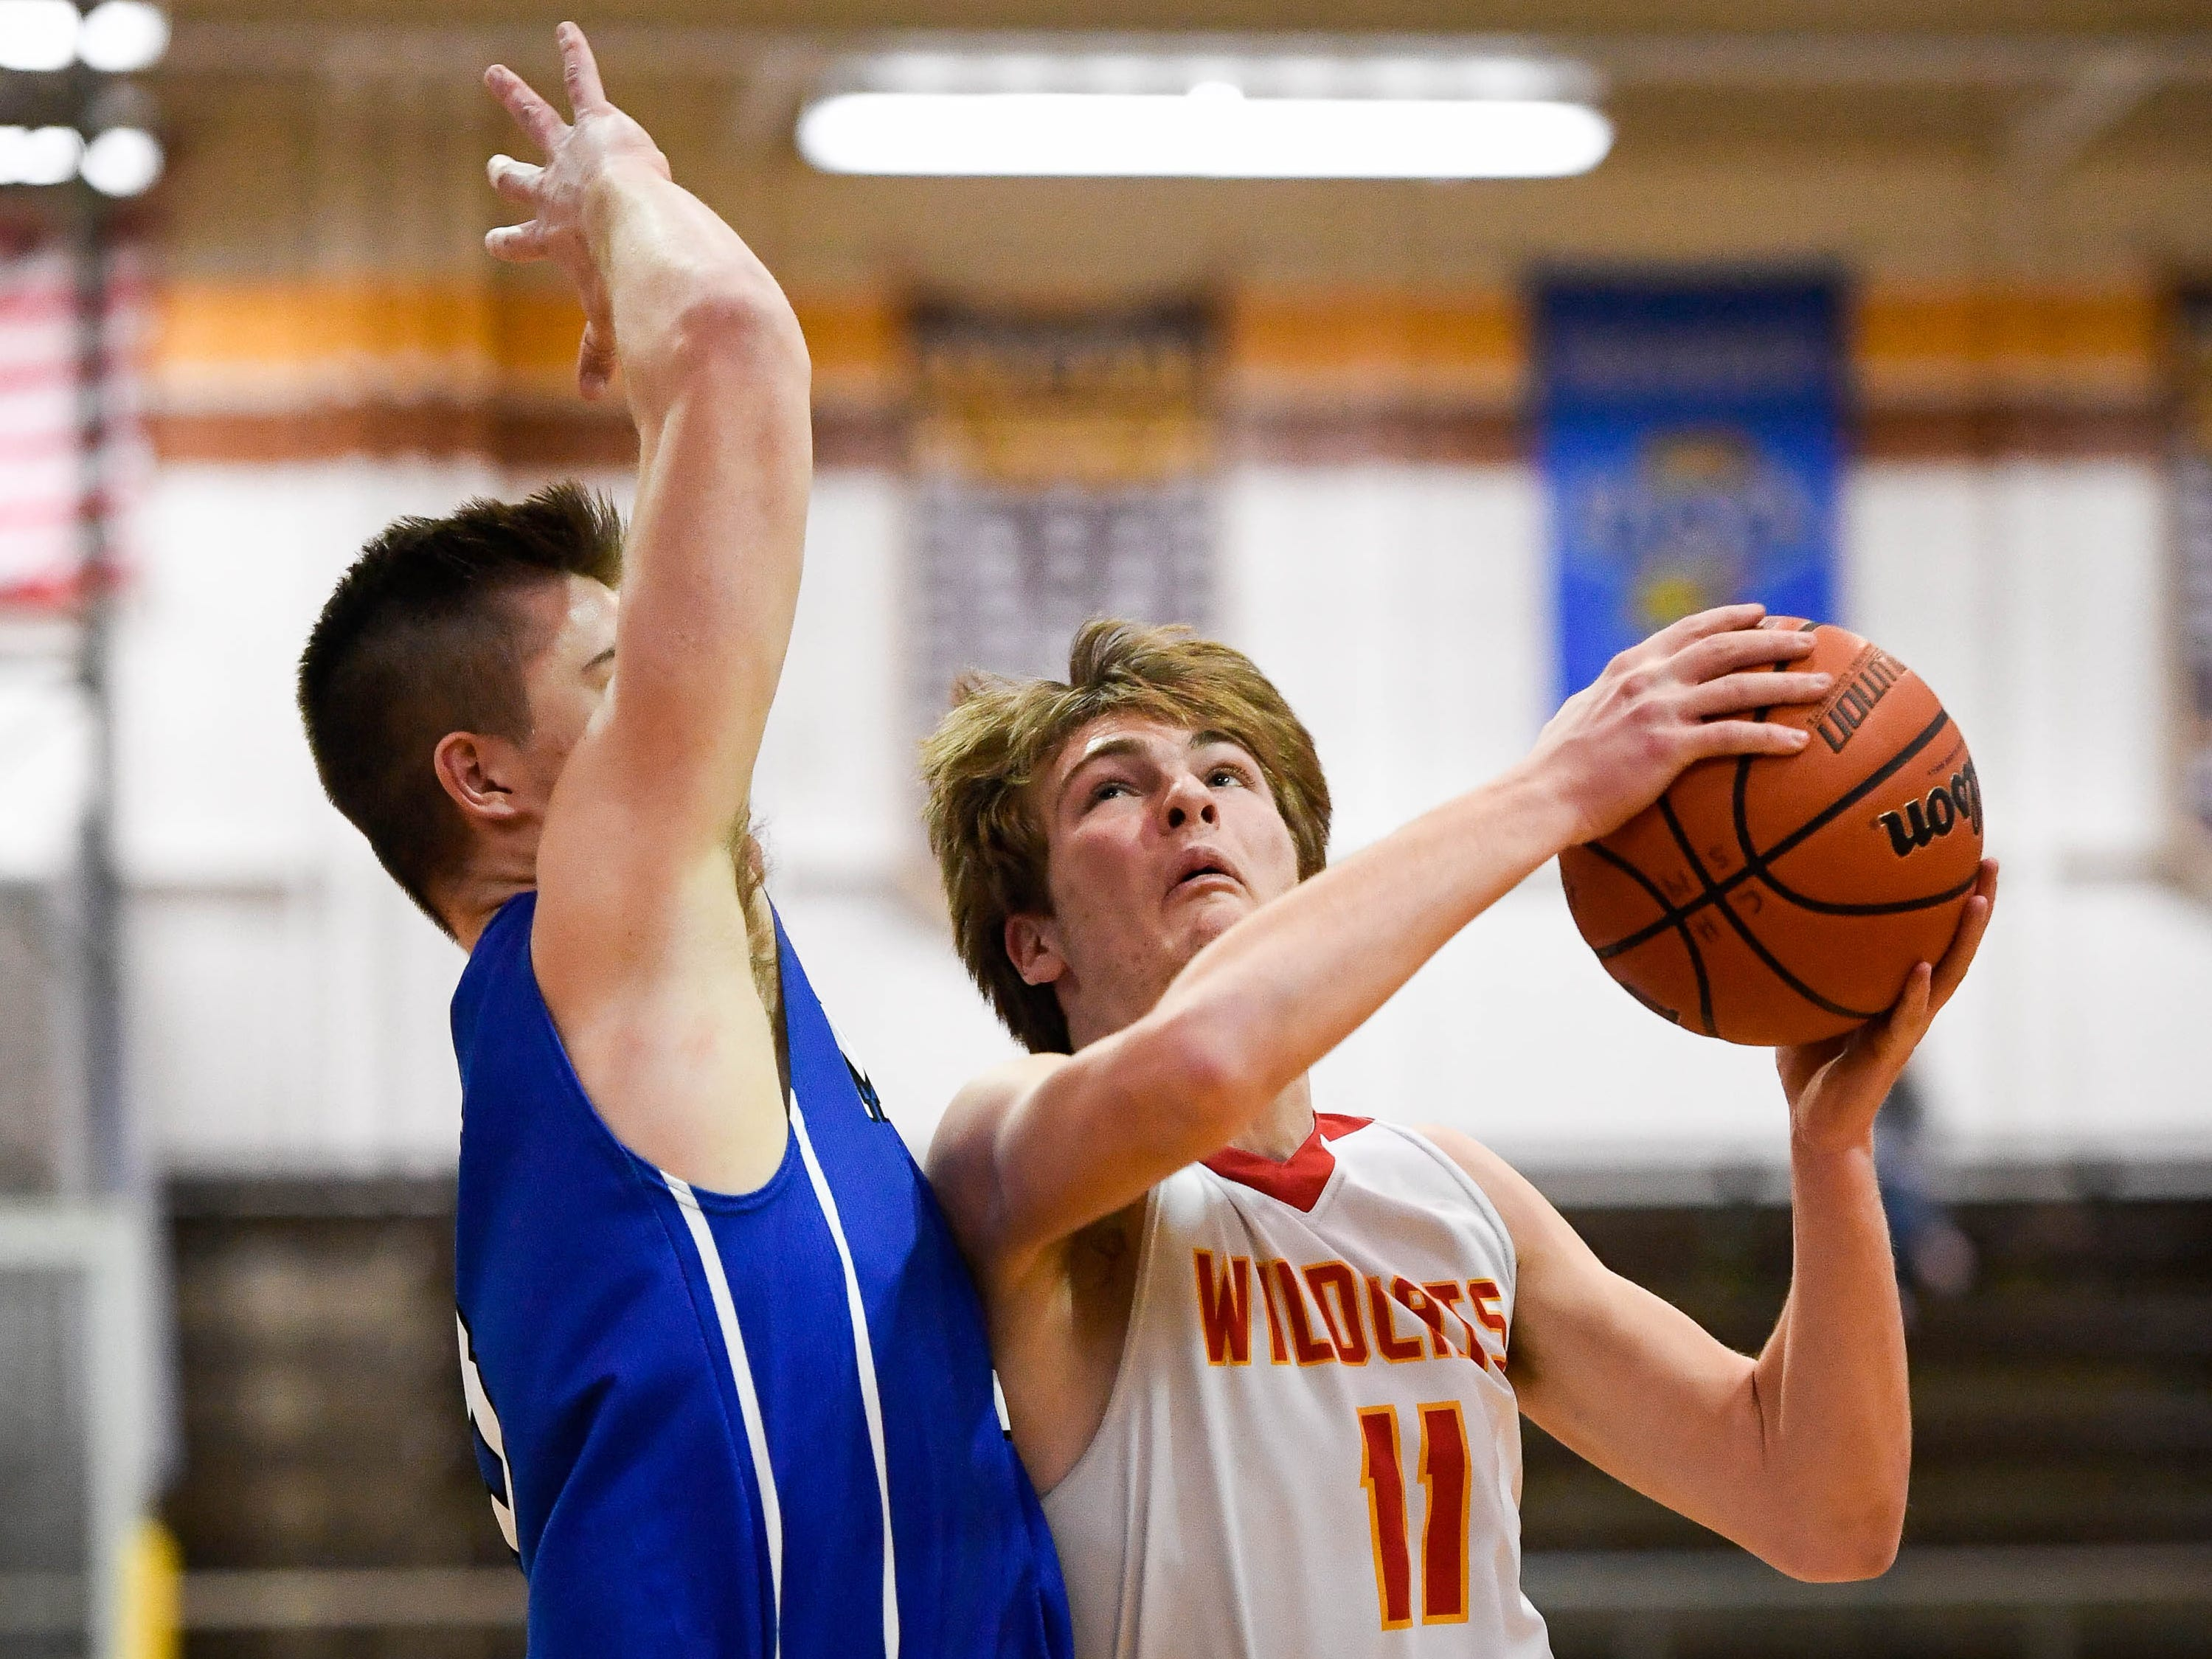 Mater Dei's Dawson Caswell (11) looks to shoot over Memorial's Branson Combs (3) as the Memorial Tigers play the Mater Dei Wildcats in the Southern Indiana Athletic Conference semi-finals at Central High Thursday, January 10, 2019.